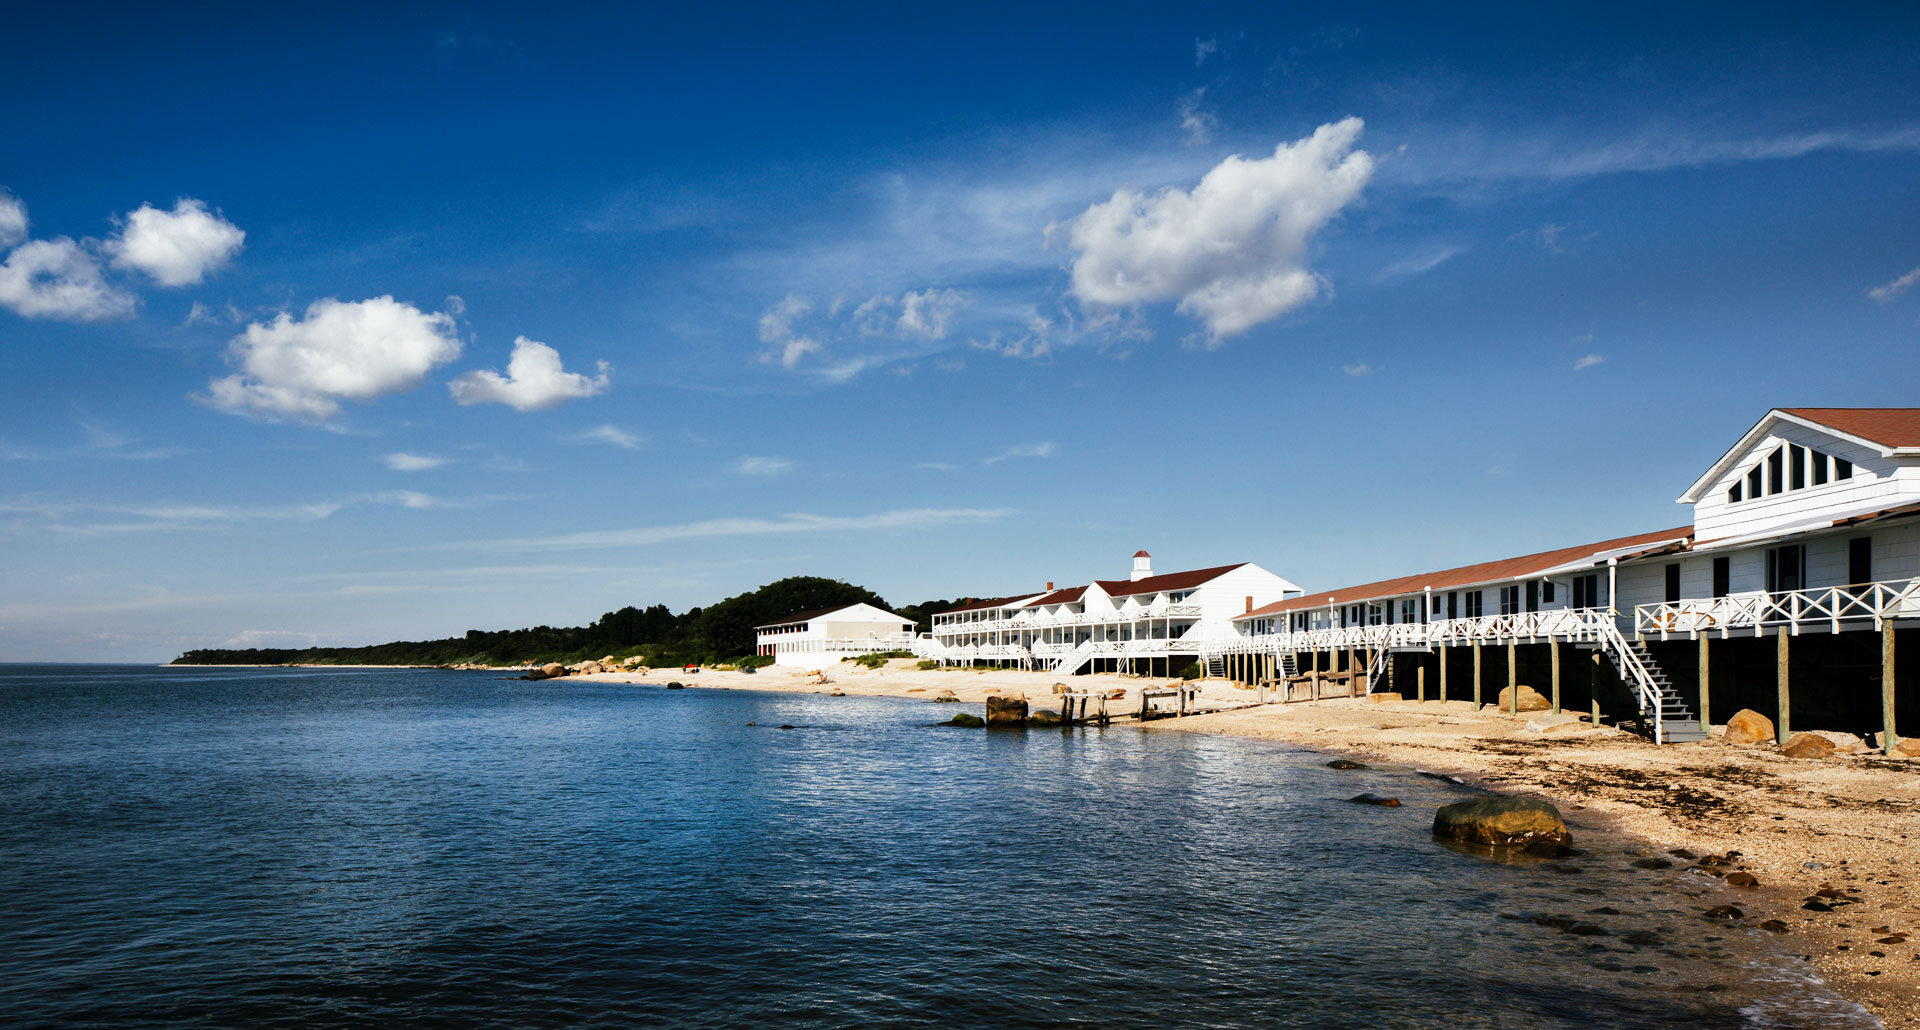 Sound View Greenport - boutique hotel in Greenport